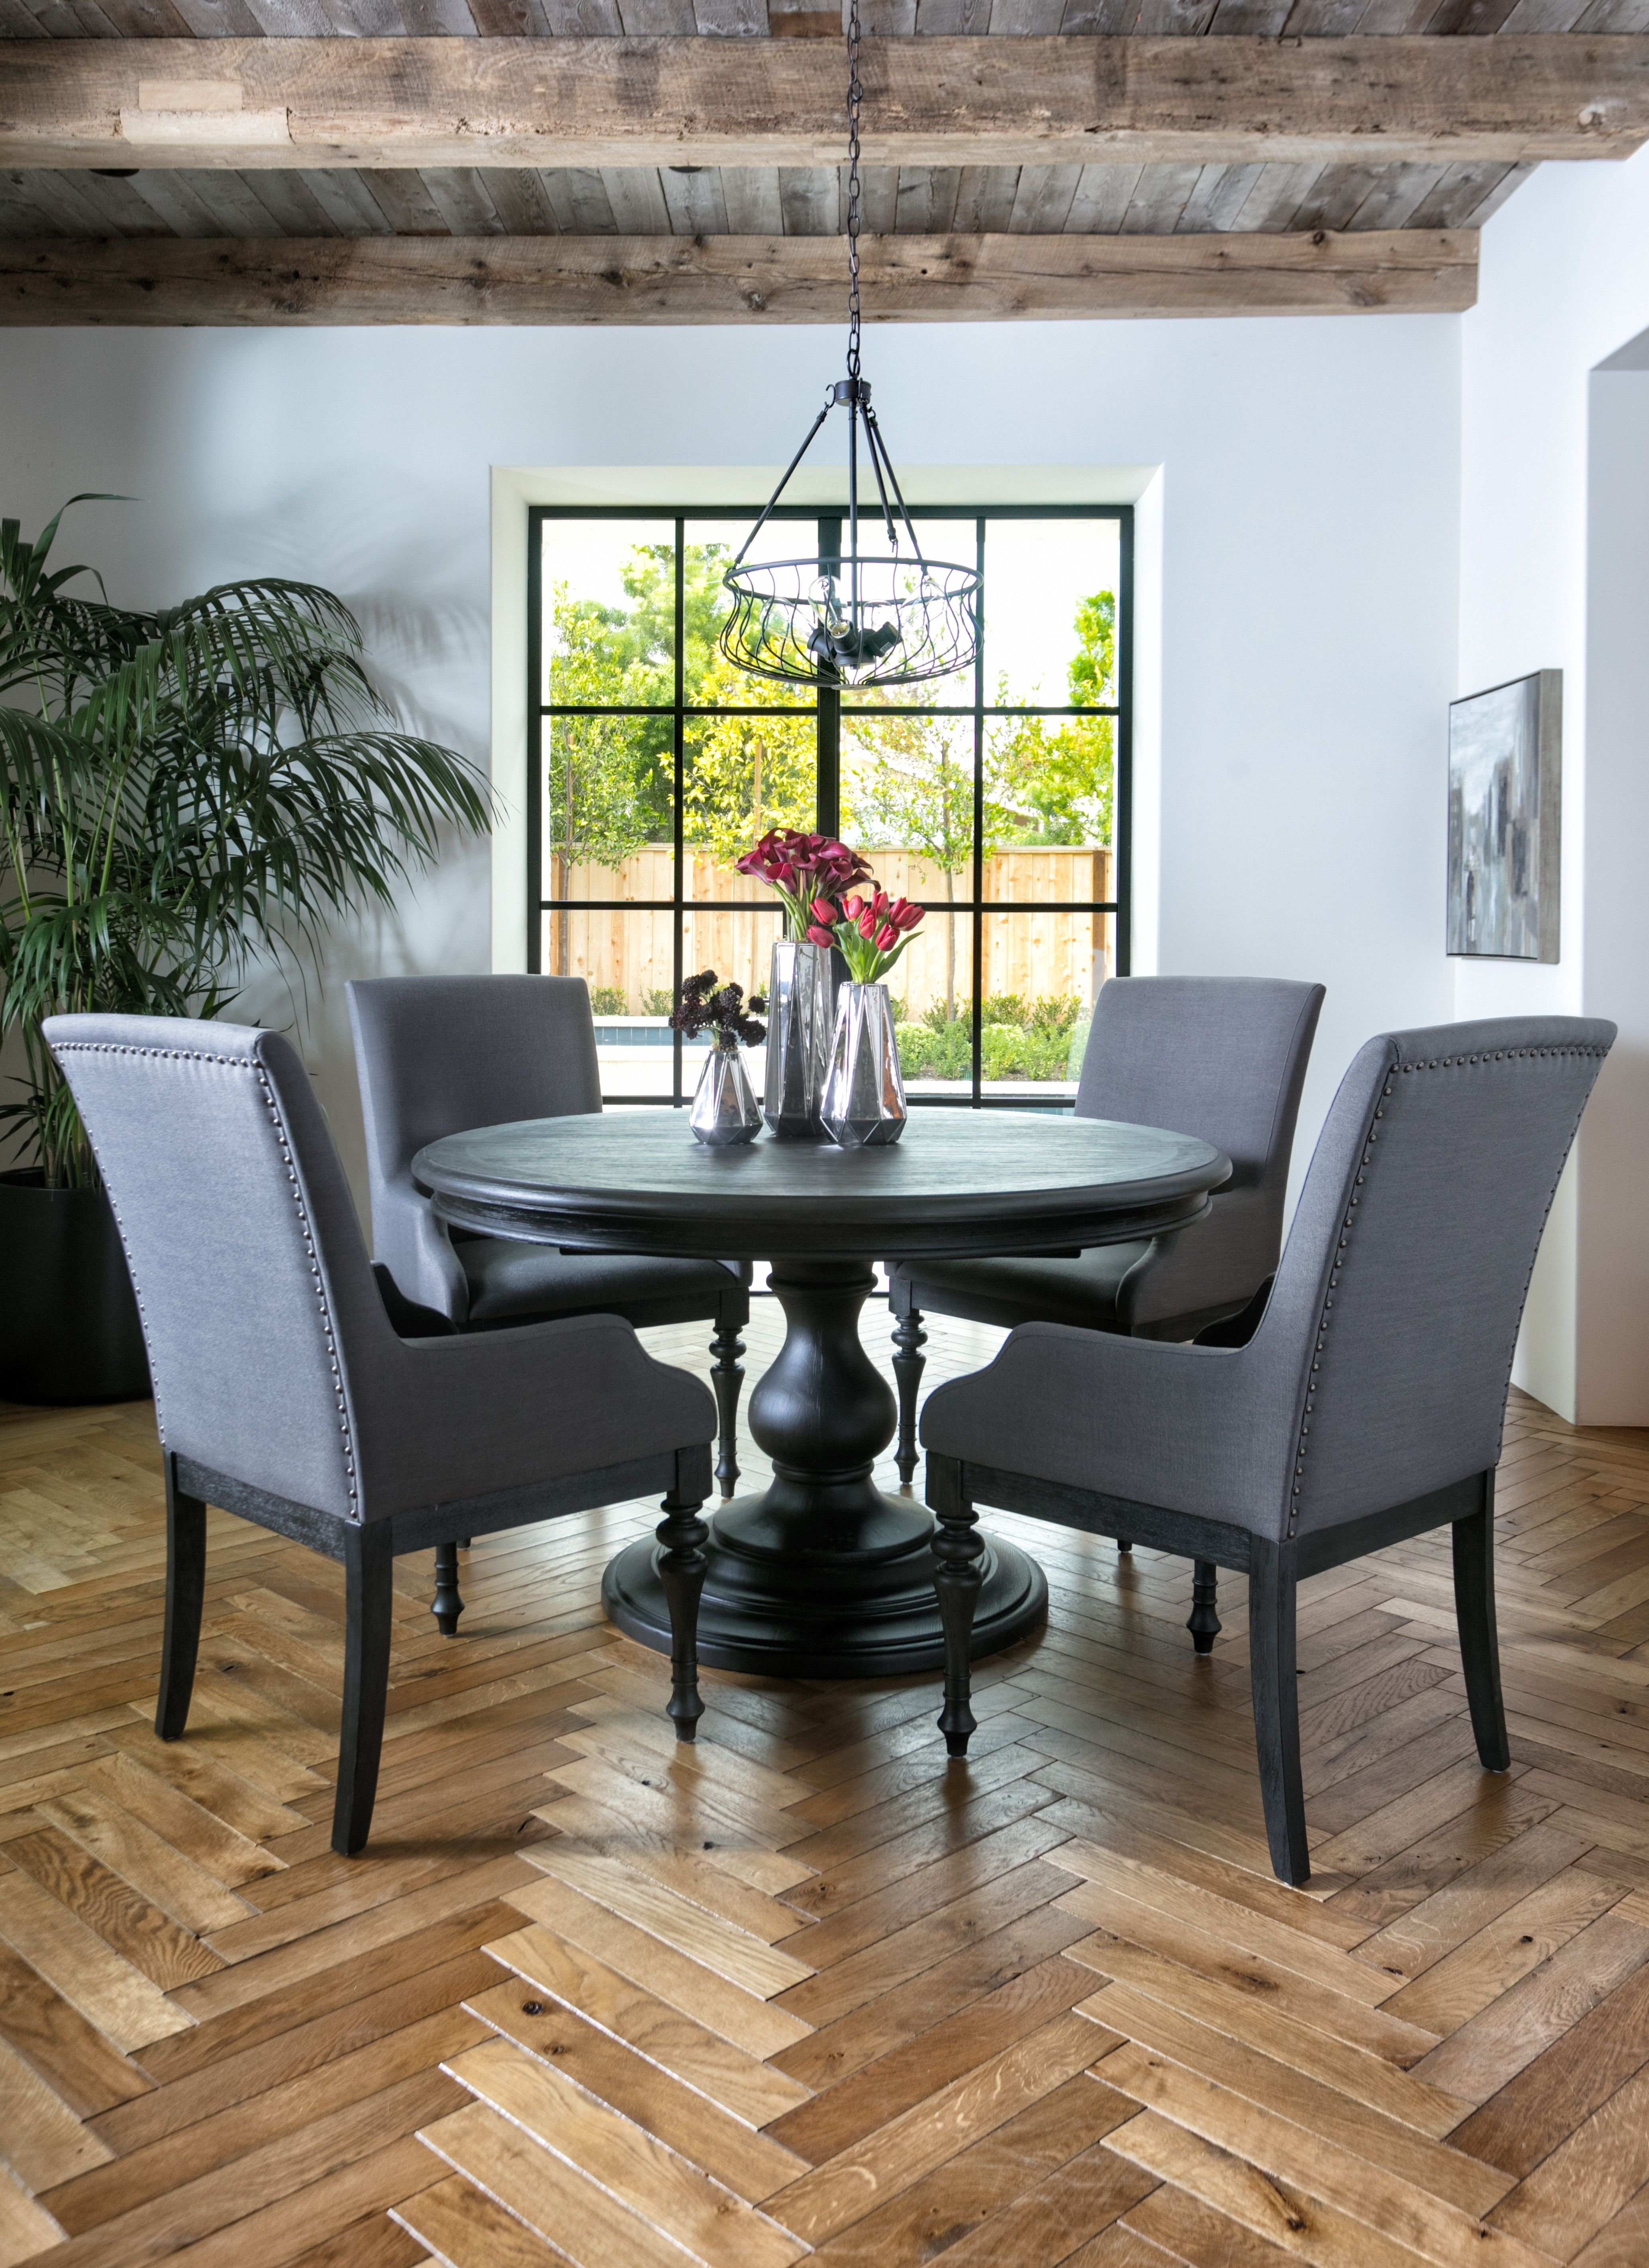 Caira Black 5 Piece Round Dining Set With Diamond Back Side Chairs Pertaining To Most Up To Date Caira 7 Piece Rectangular Dining Sets With Diamond Back Side Chairs (Photo 3 of 20)